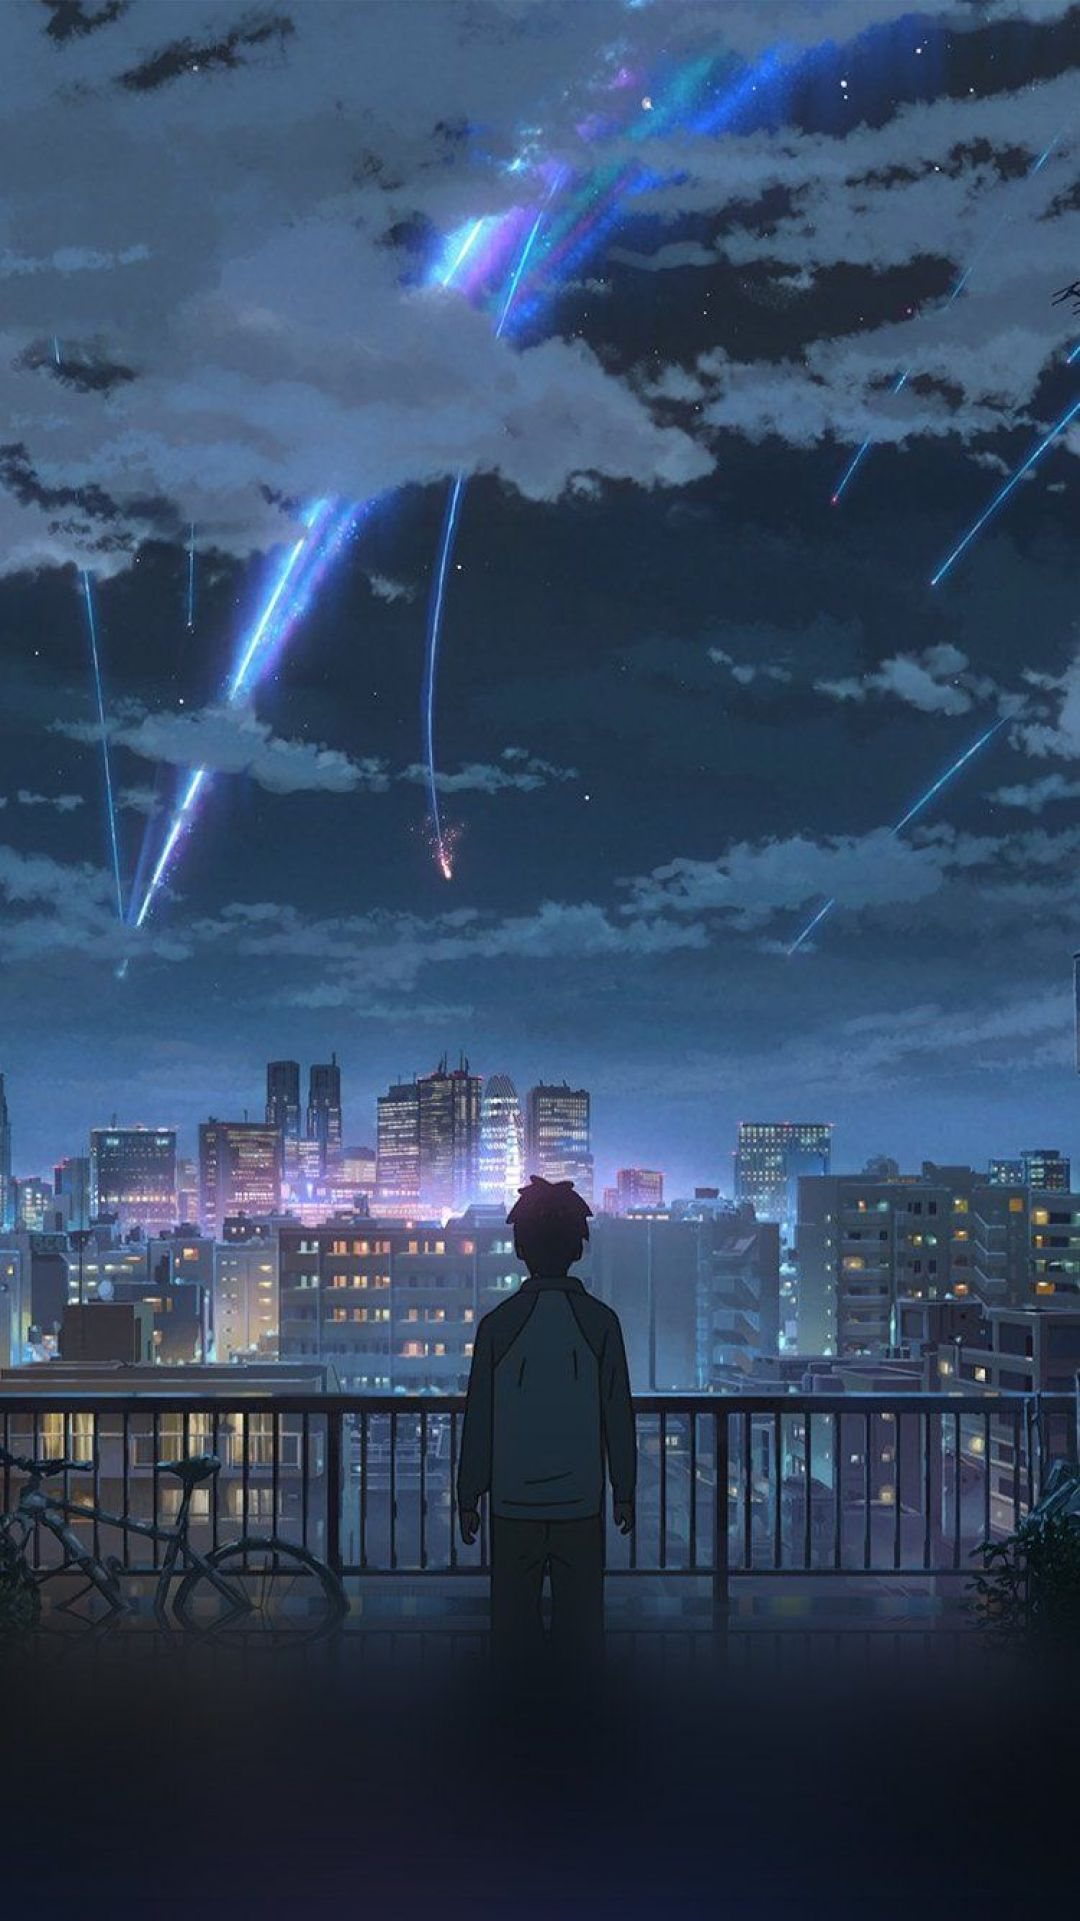 45 Anime Aesthetics Android Iphone Desktop Hd Backgrounds Wallpapers 1080p 4k 1080x1921 2020